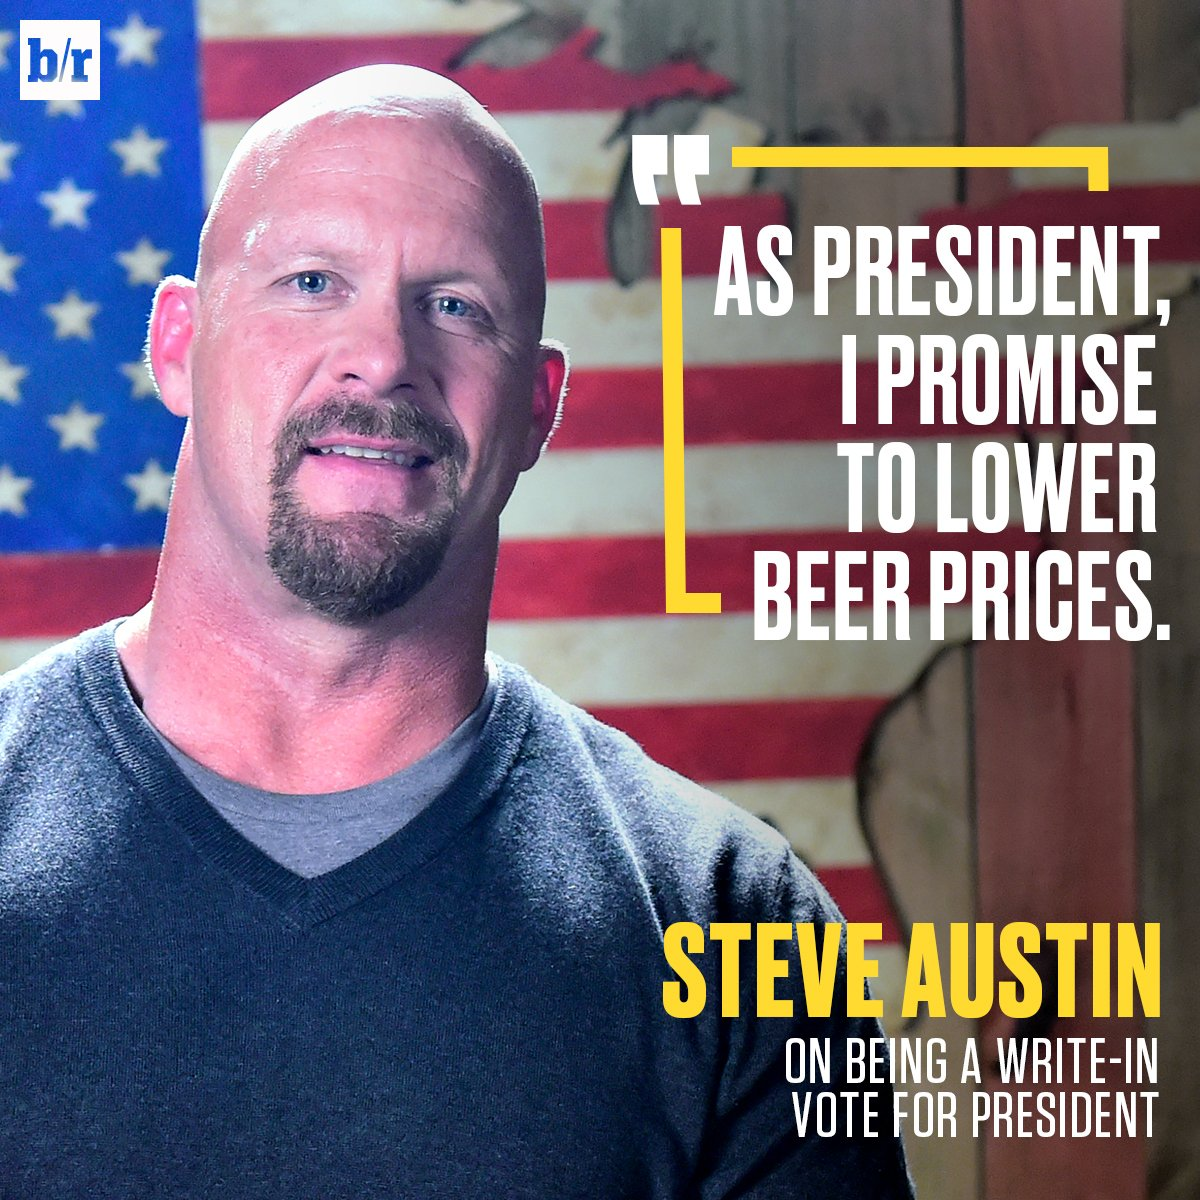 .@steveaustinBSR is giving you another option on #ElectionNight